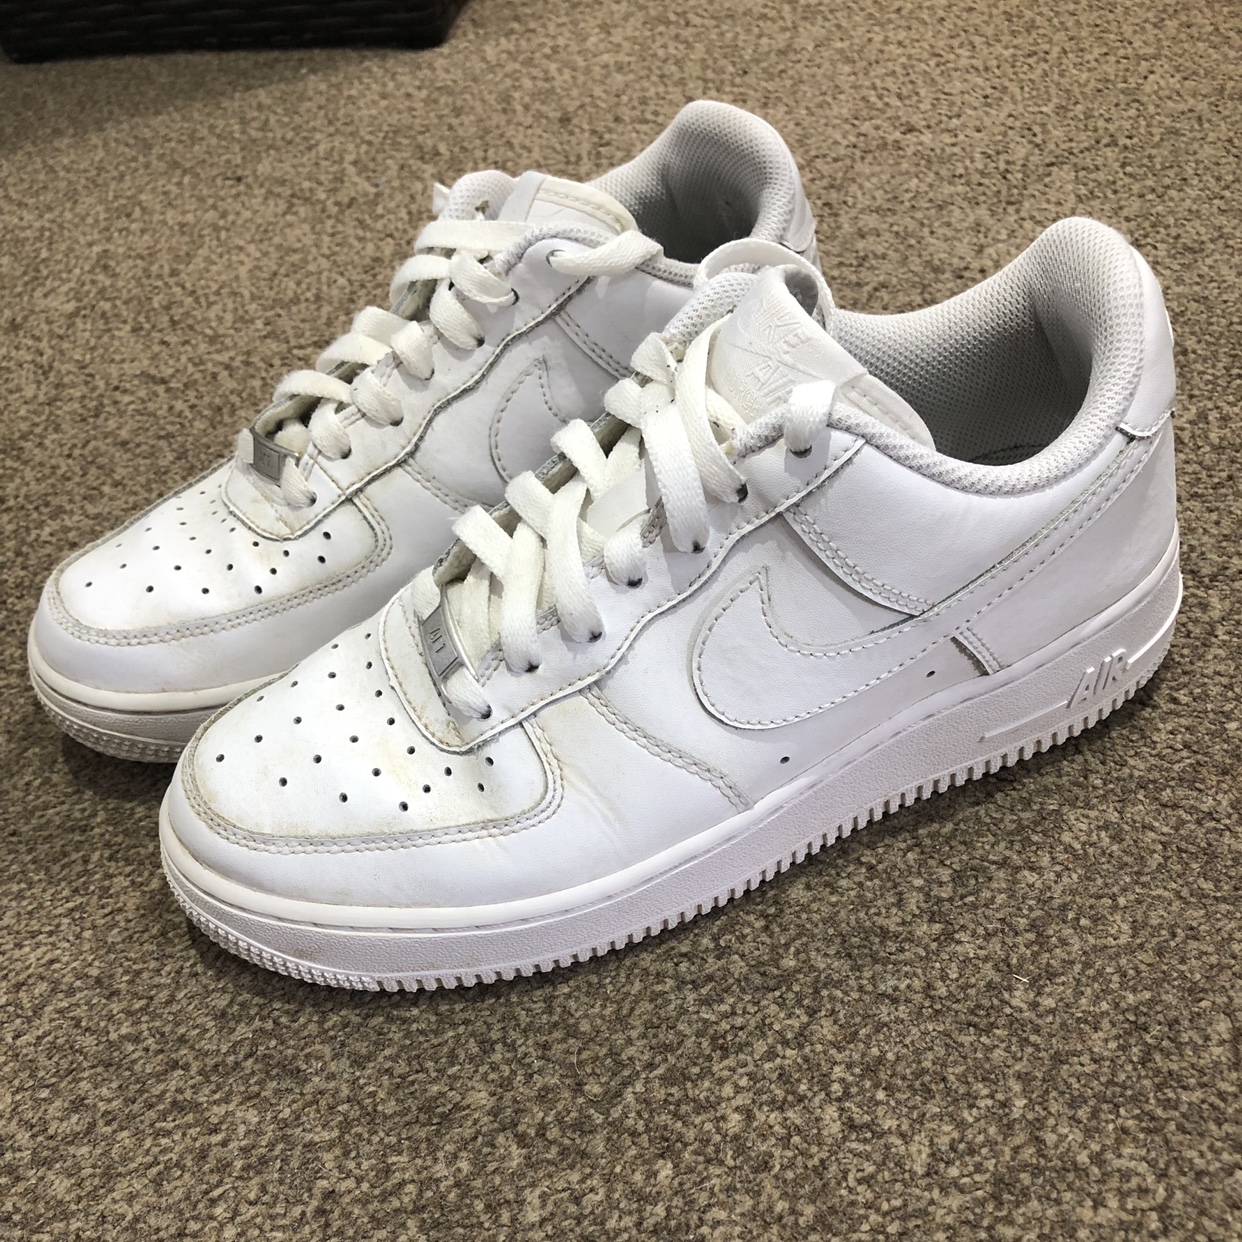 Nike Air Force 1 Low Cut In White Size 5 5uk Depop